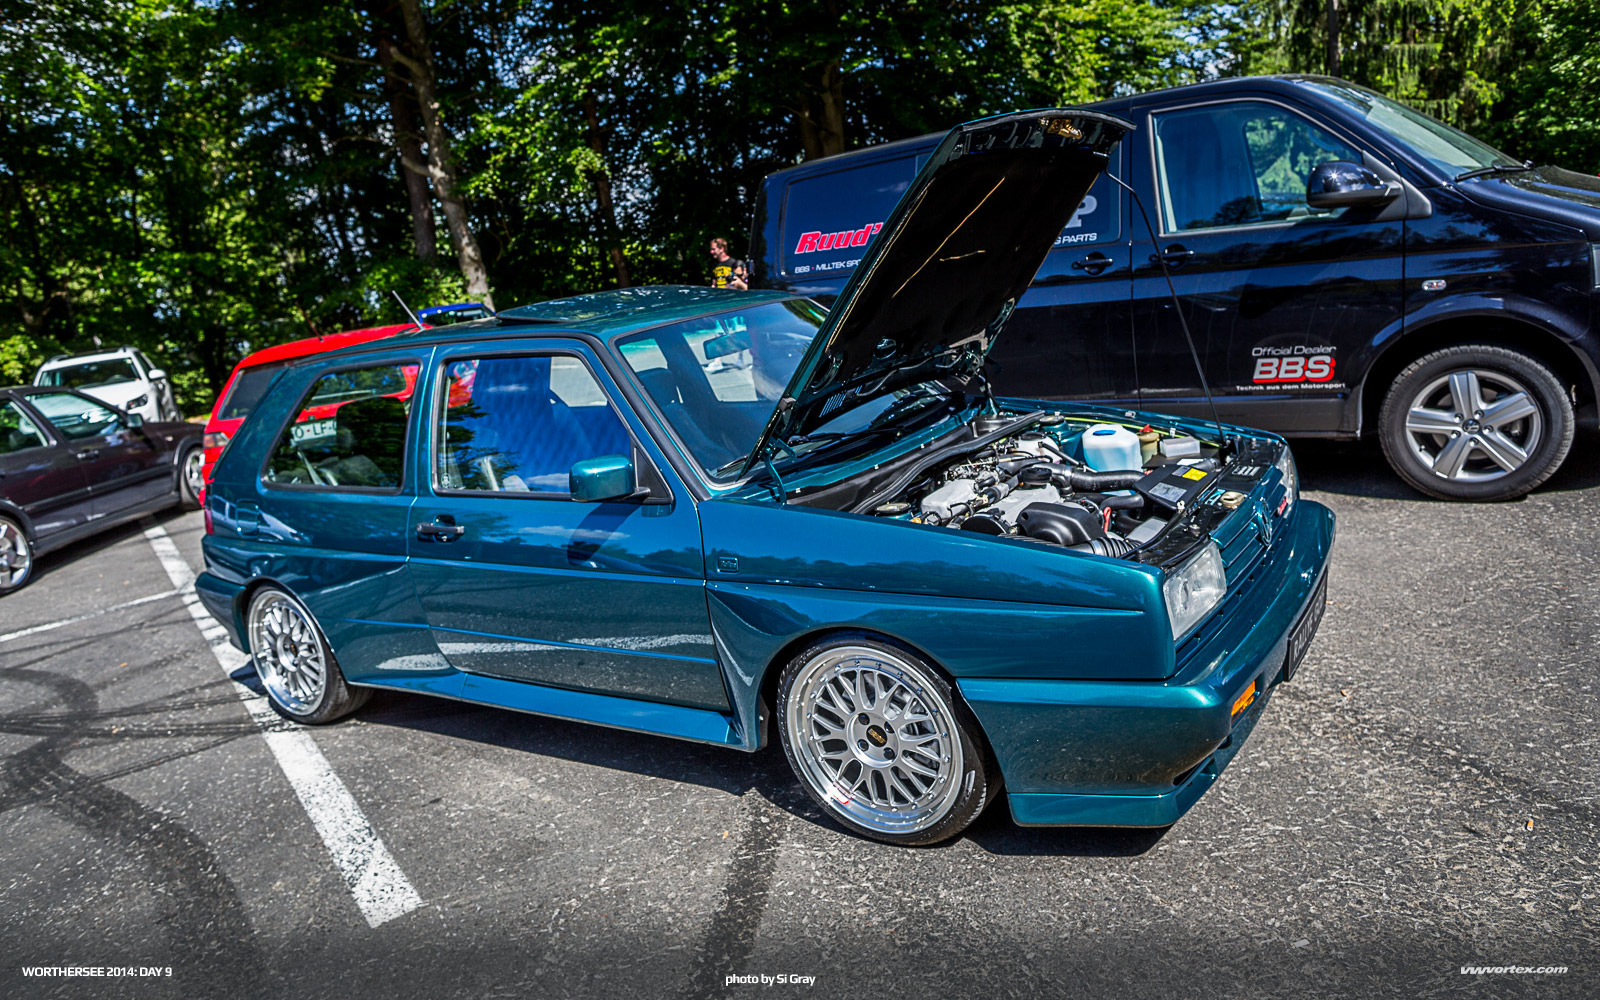 2014-Worthersee-Day-9-Si-Gray-405